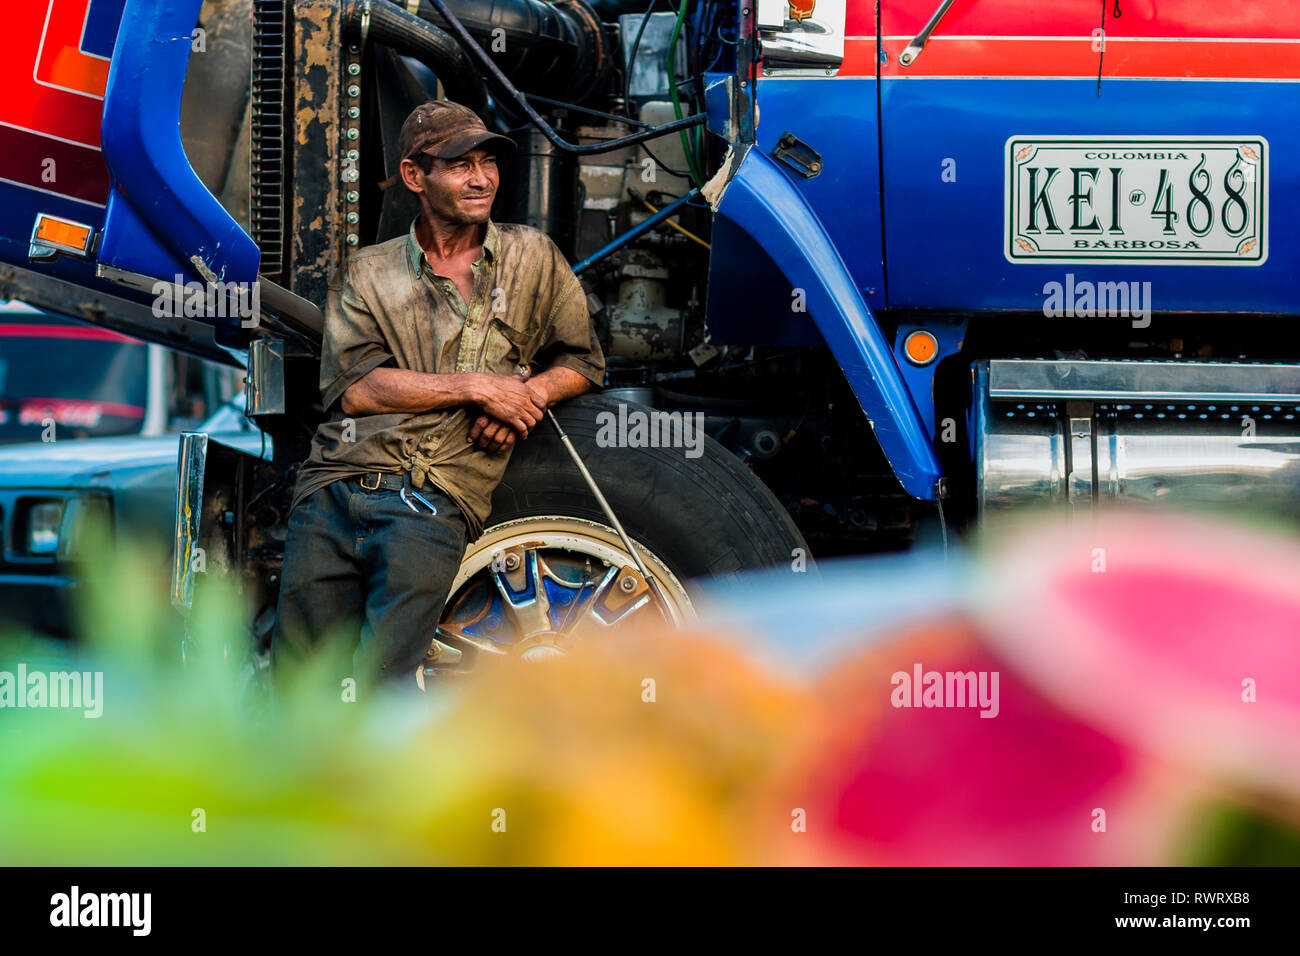 A Colombian car mechanic, leant against the truck wheel, watches the street in Barrio Triste, Medellín, Colombia. - Stock Image